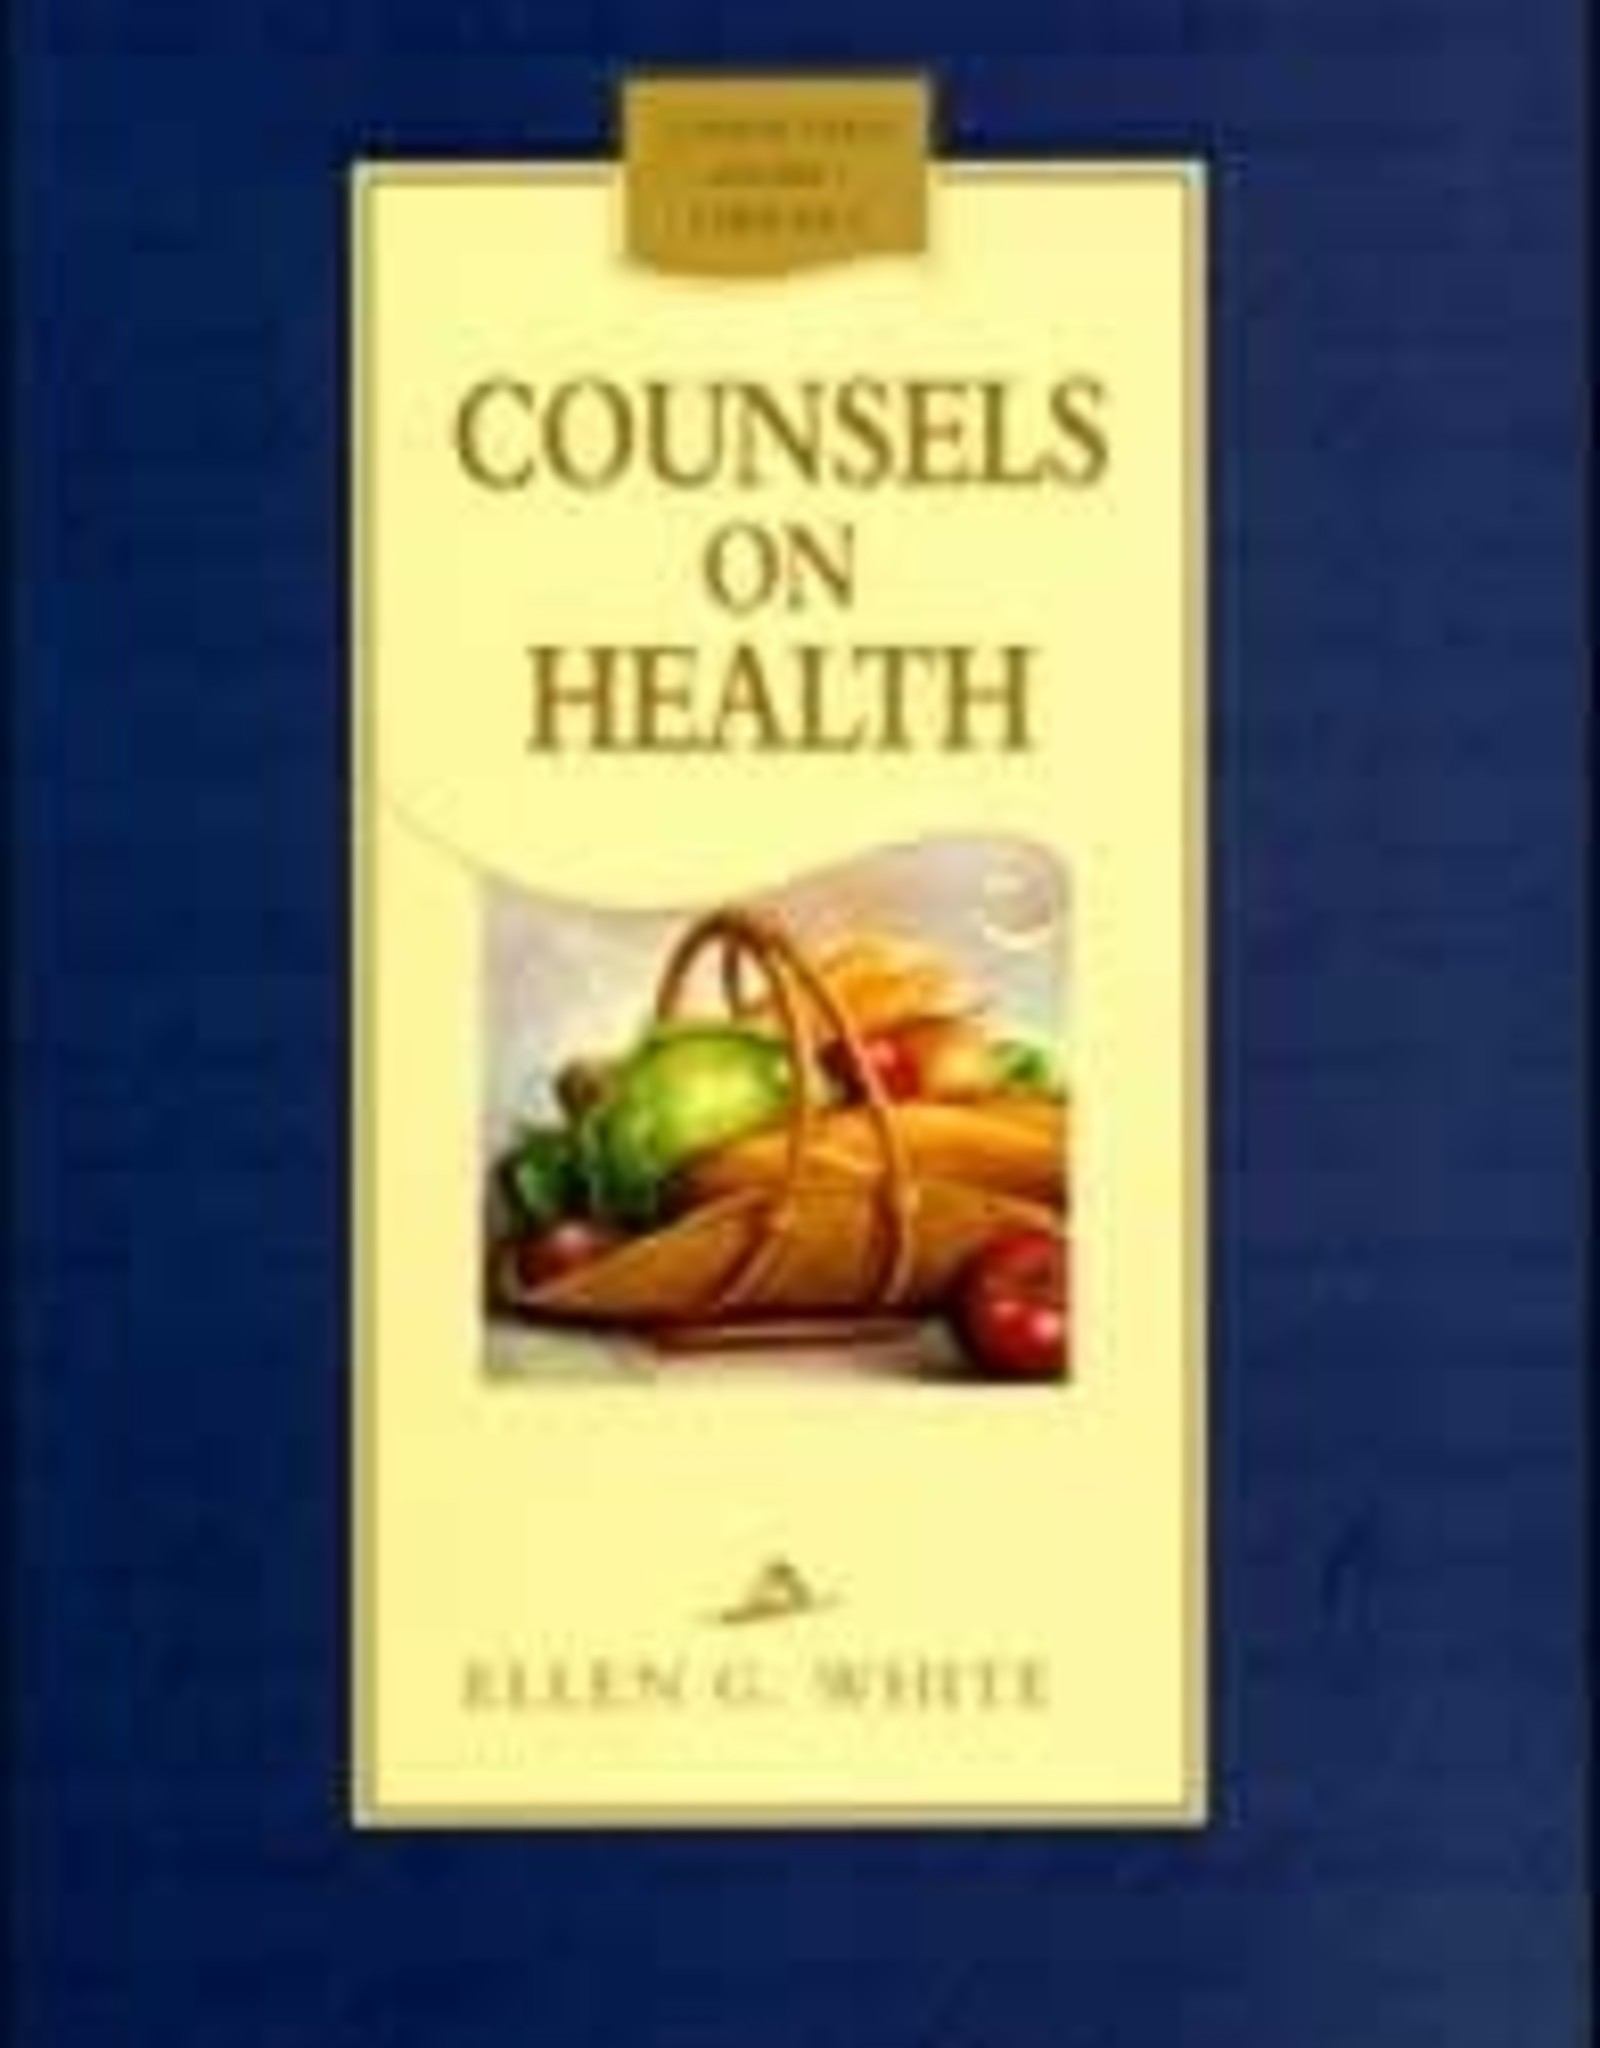 Counsels on Health - Hard cover